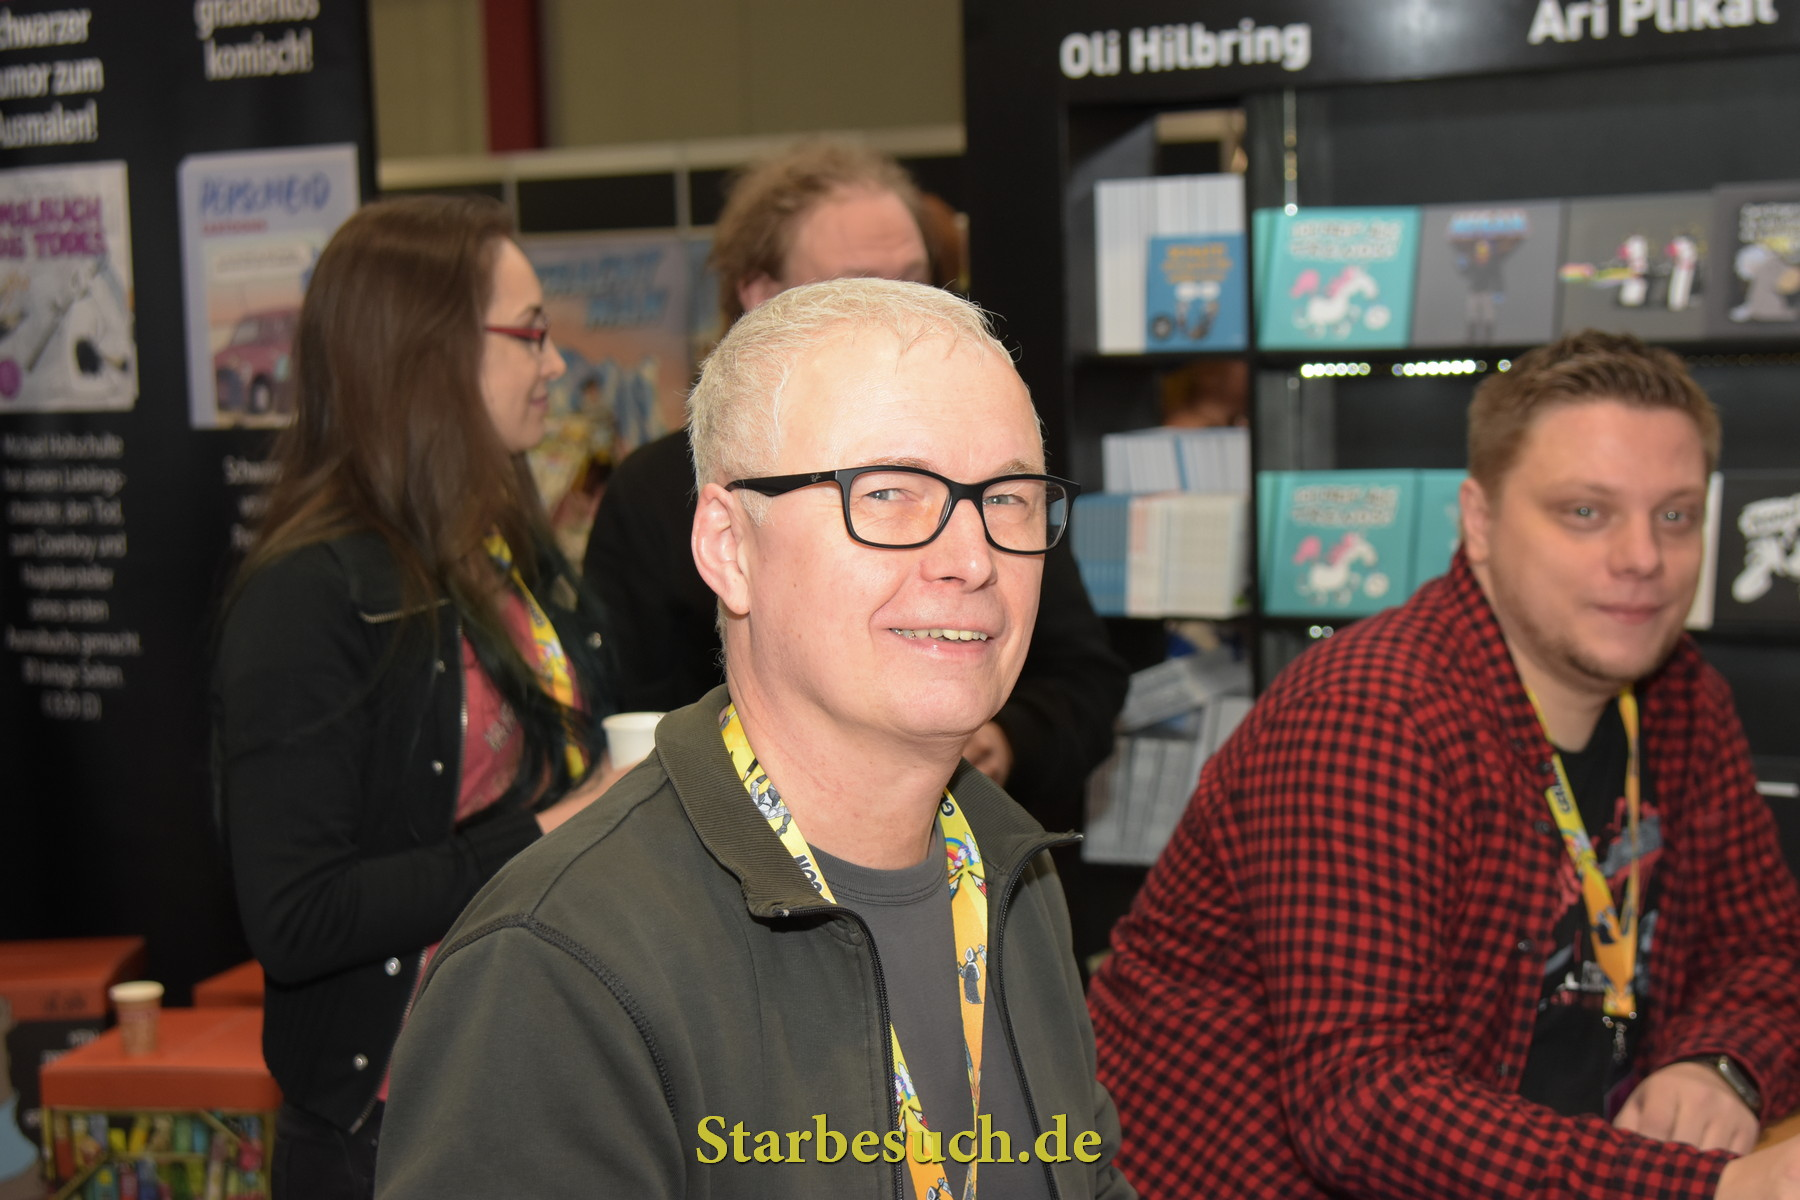 Dortmund, Germany - December 9th 2017: German cartoonist Ari Plikat (* 1958 - Titanic, Eulenspiegel, Zitty, Pardon, taz, Stern) at German Comic Con Dortmund.